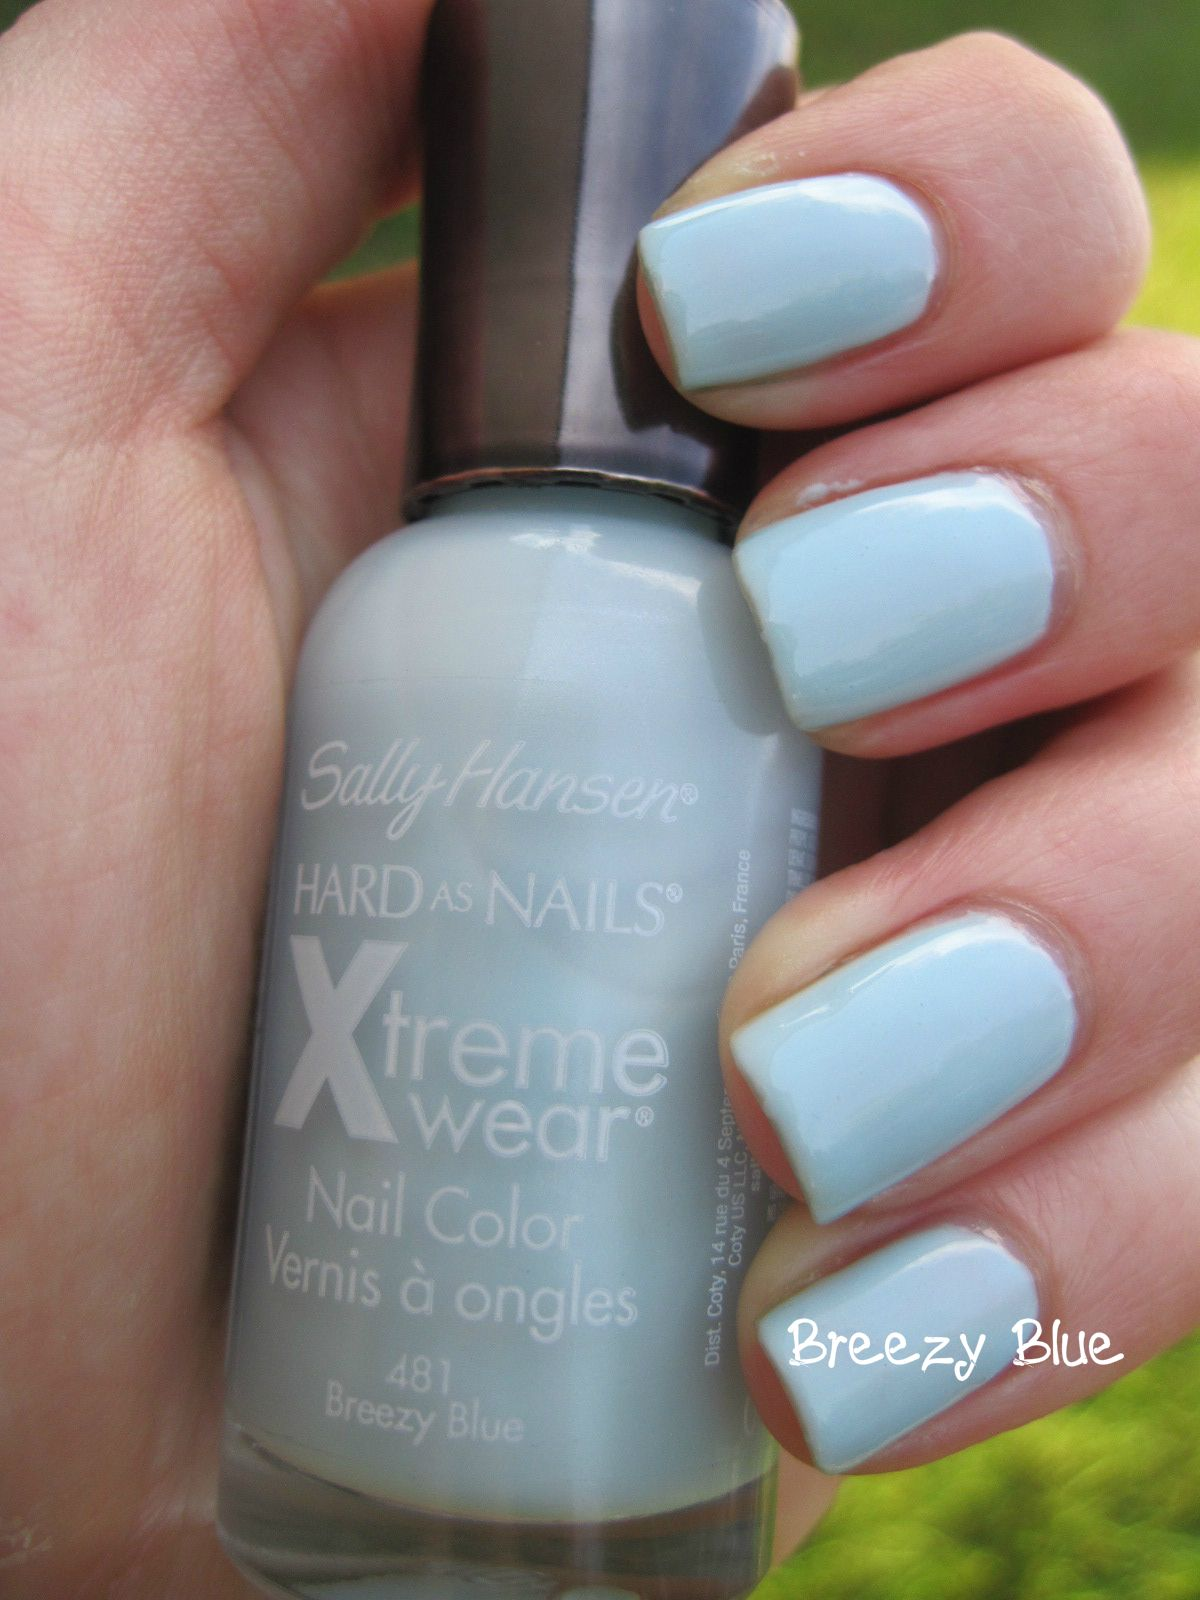 Sally Hansen Hard as Nails Xtreme Wear - Breezy Blue. I have this ...